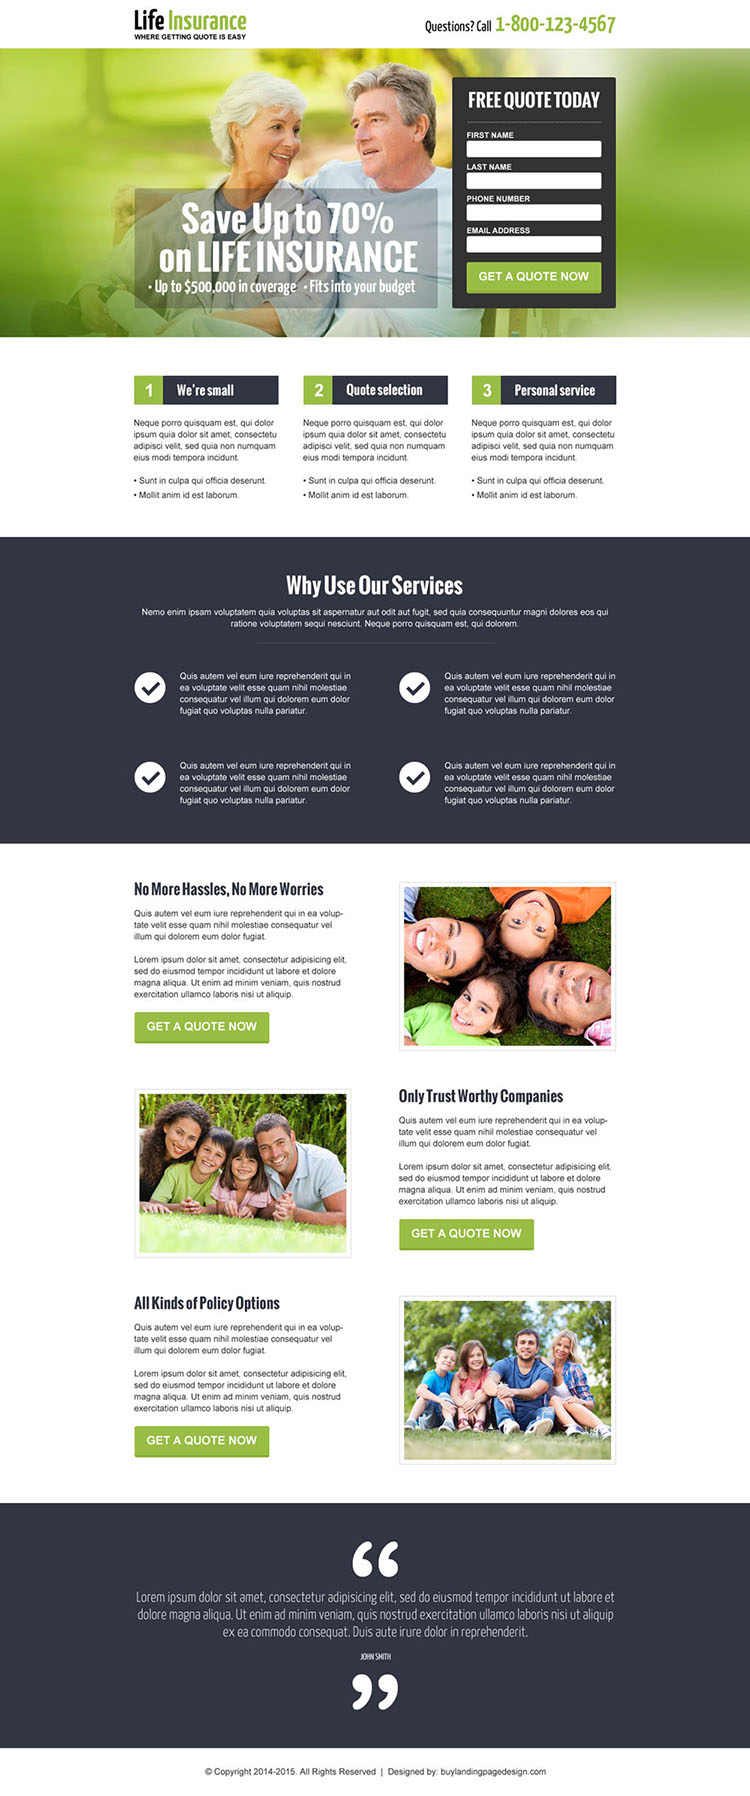 save money on life insurance free quote landing page